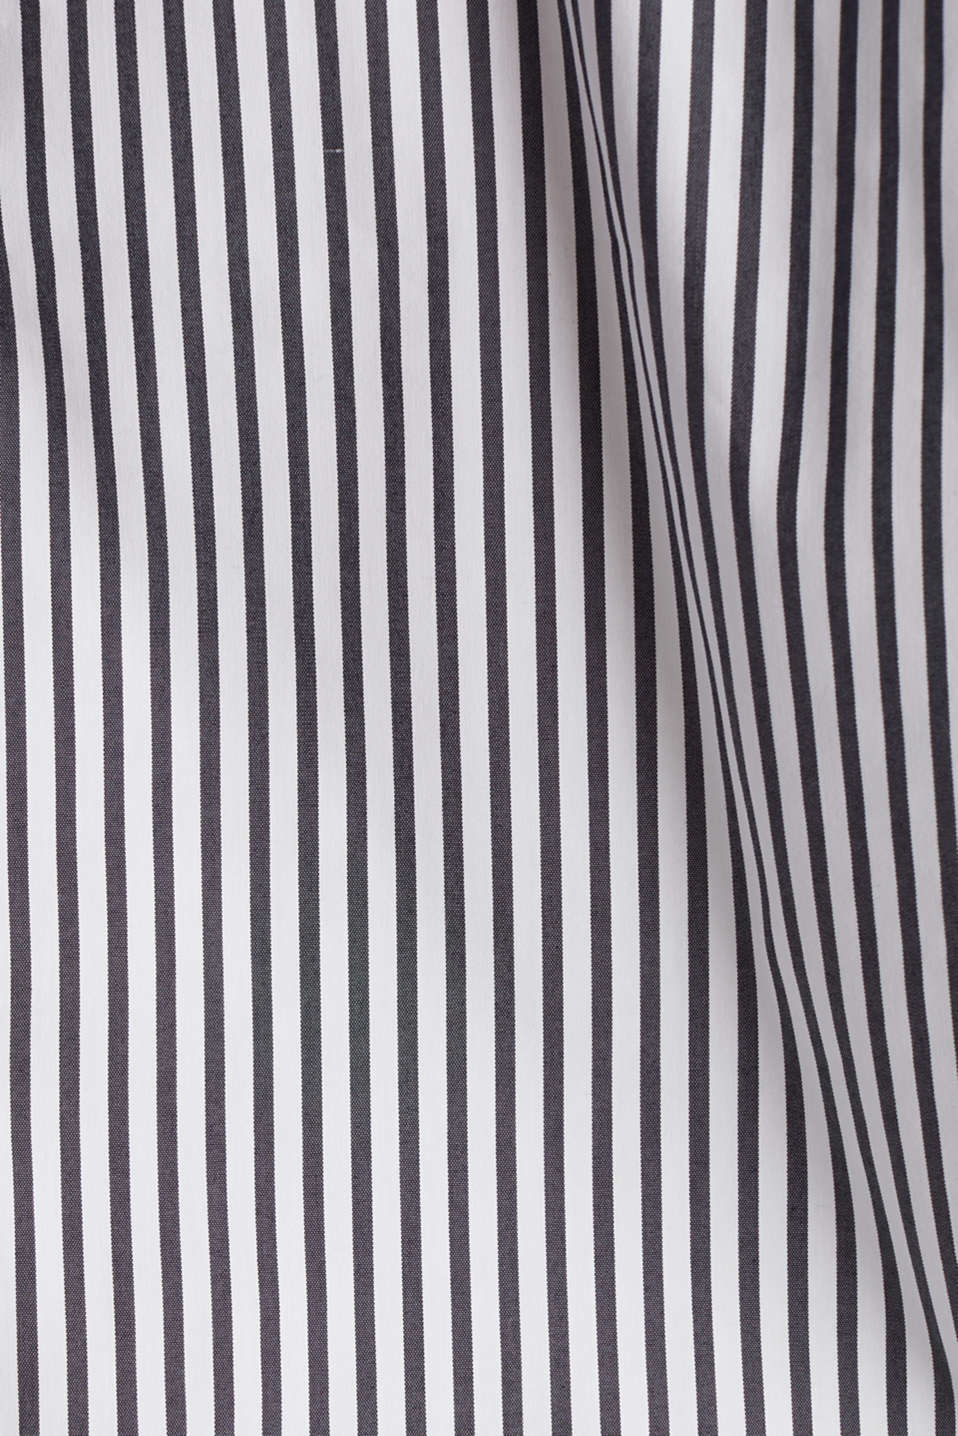 Striped slip-on blouse in a boxy fit, BLACK 2, detail image number 4